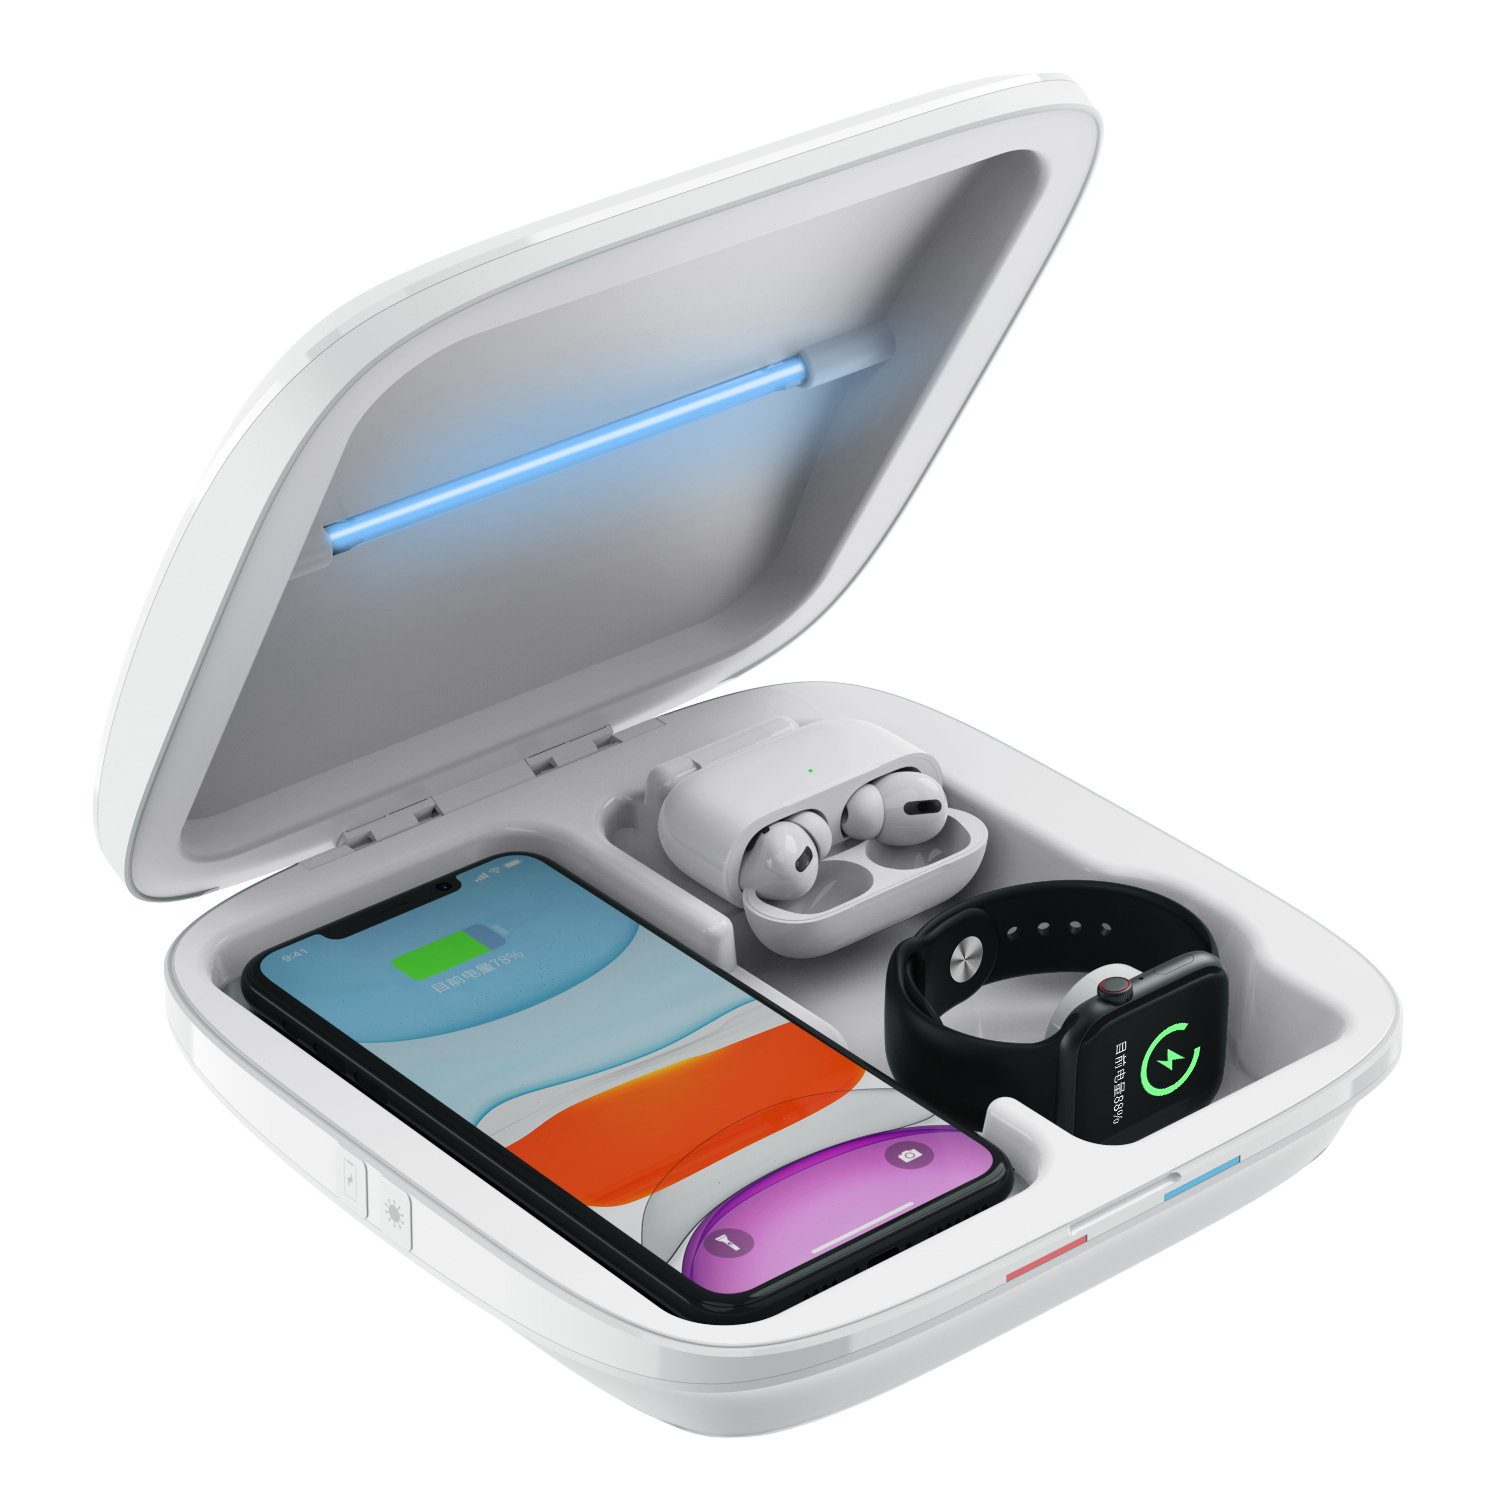 Vmax wholesale UV cell phone Cleaner with fast wireless charger 4 in 1 Phone Sterilization Box